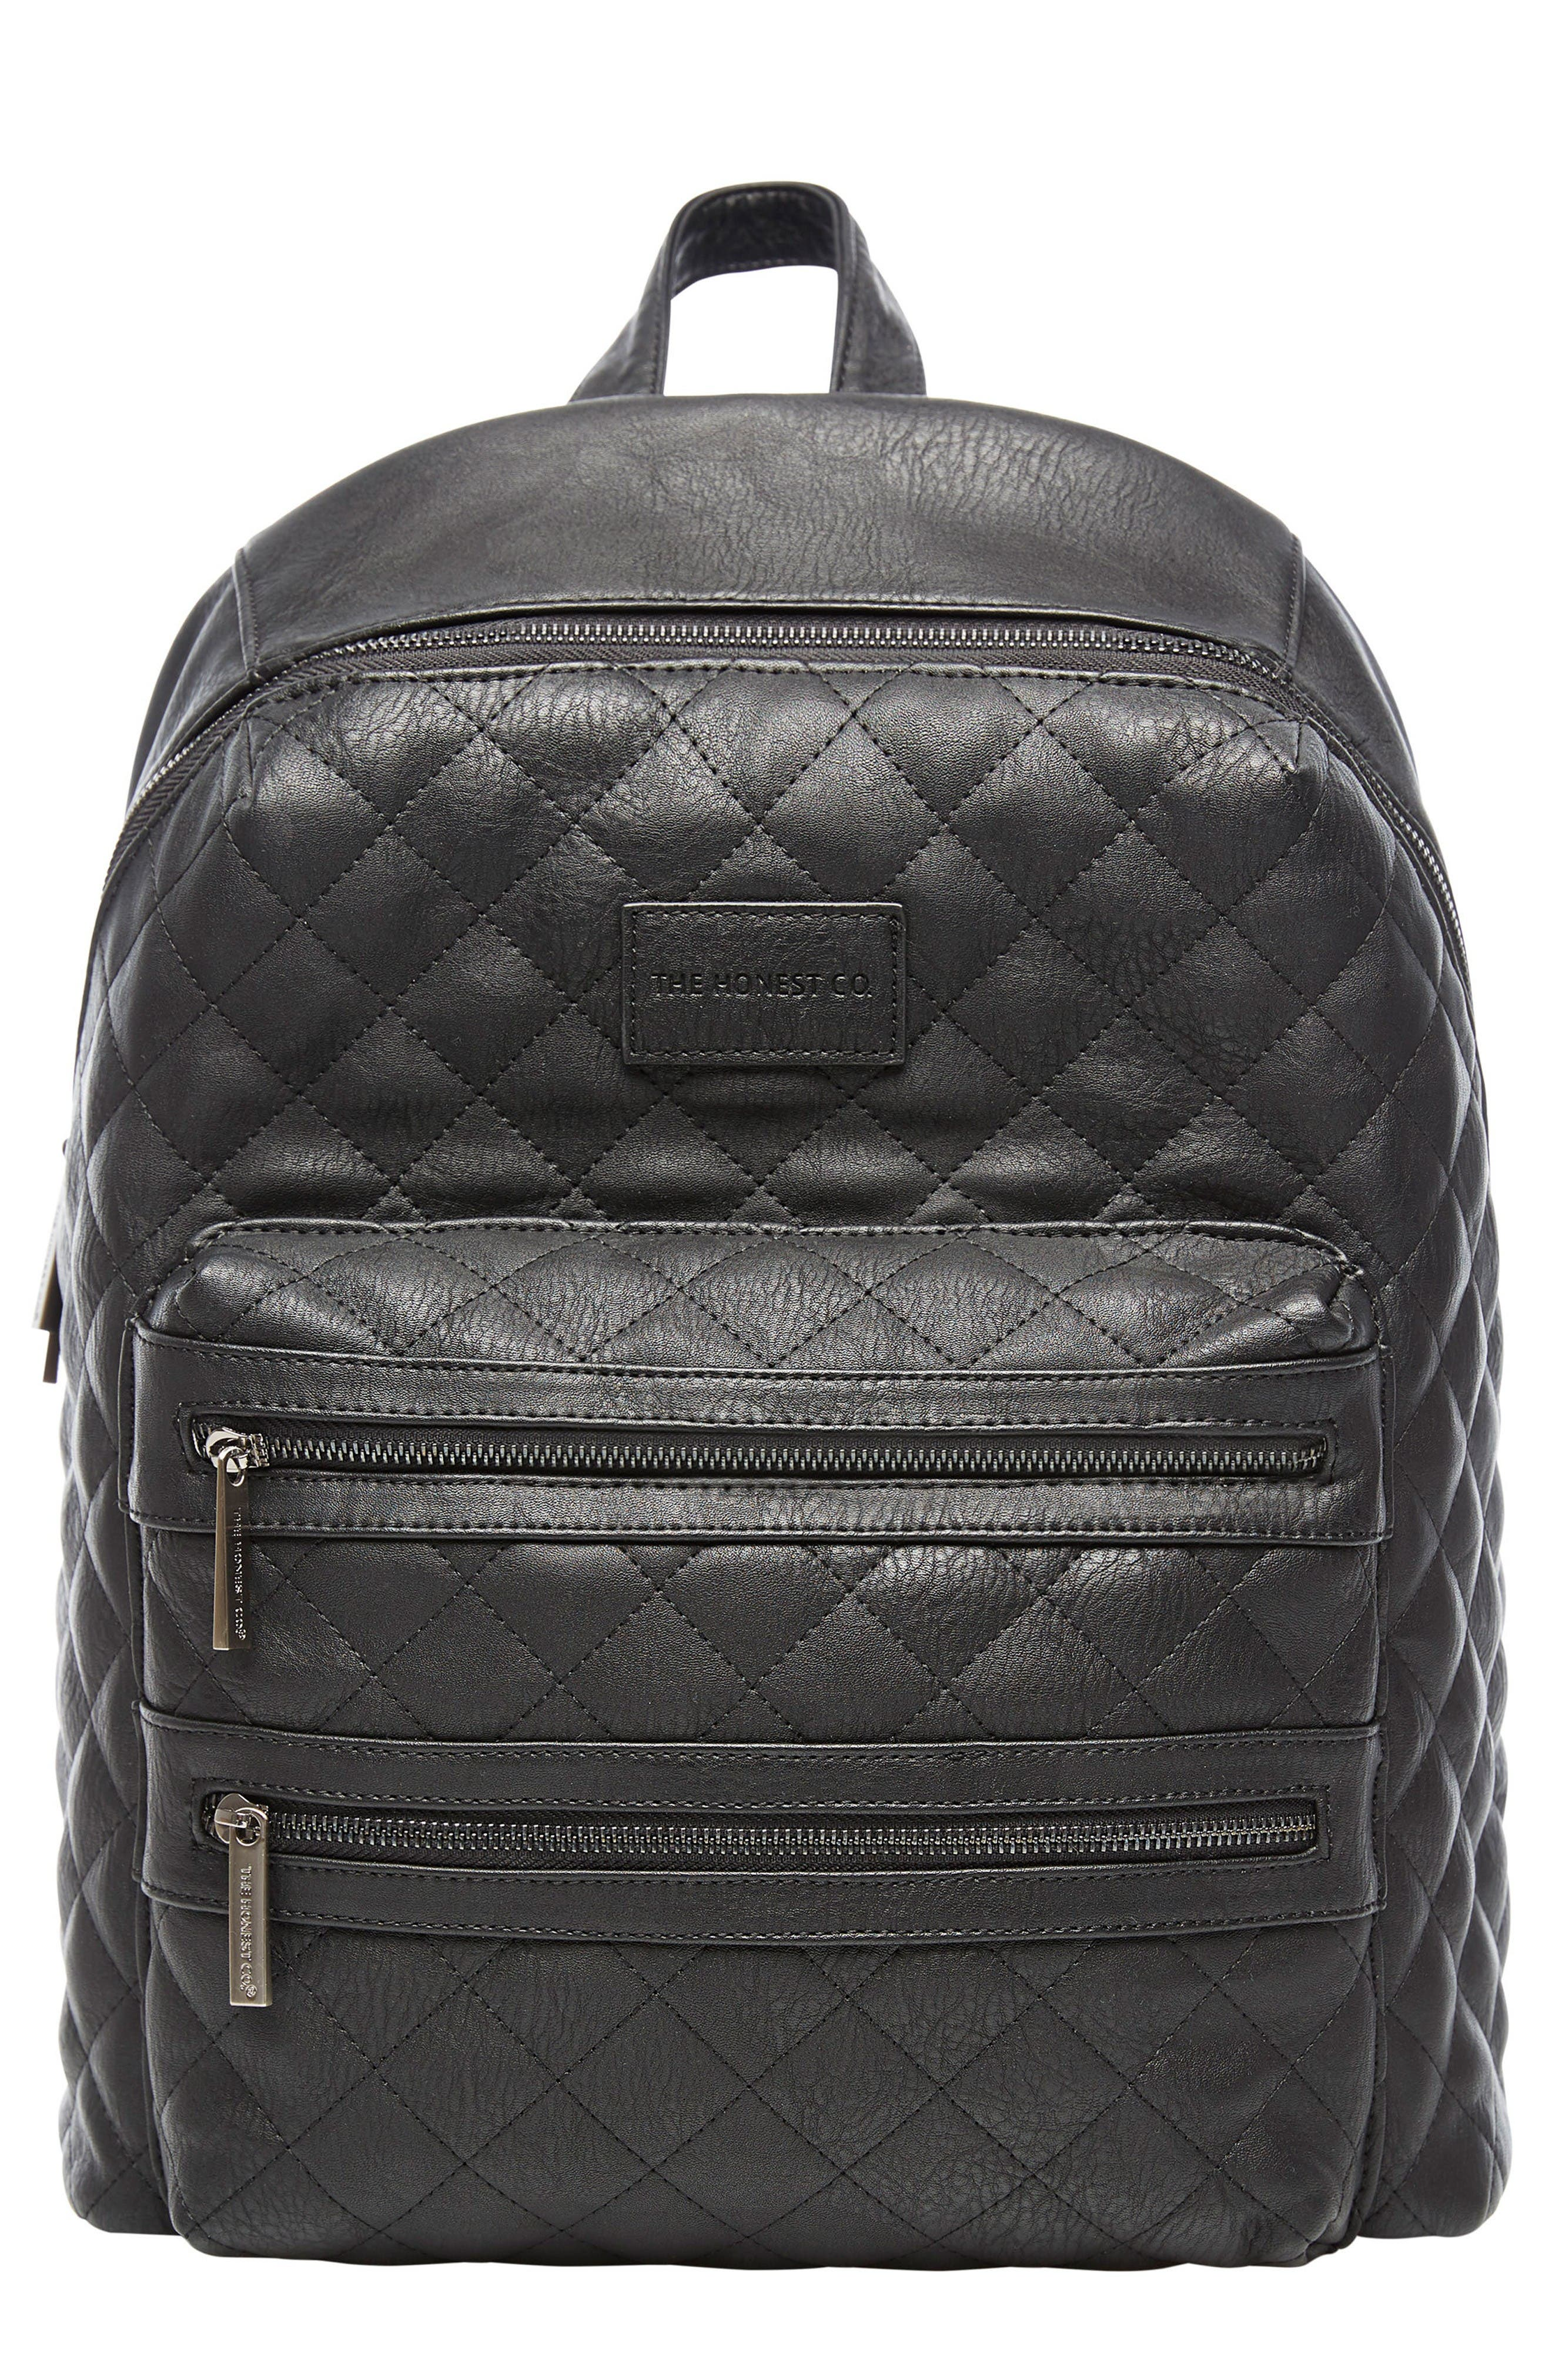 Main Image - The Honest Company City Quilted Faux Leather Diaper Backpack